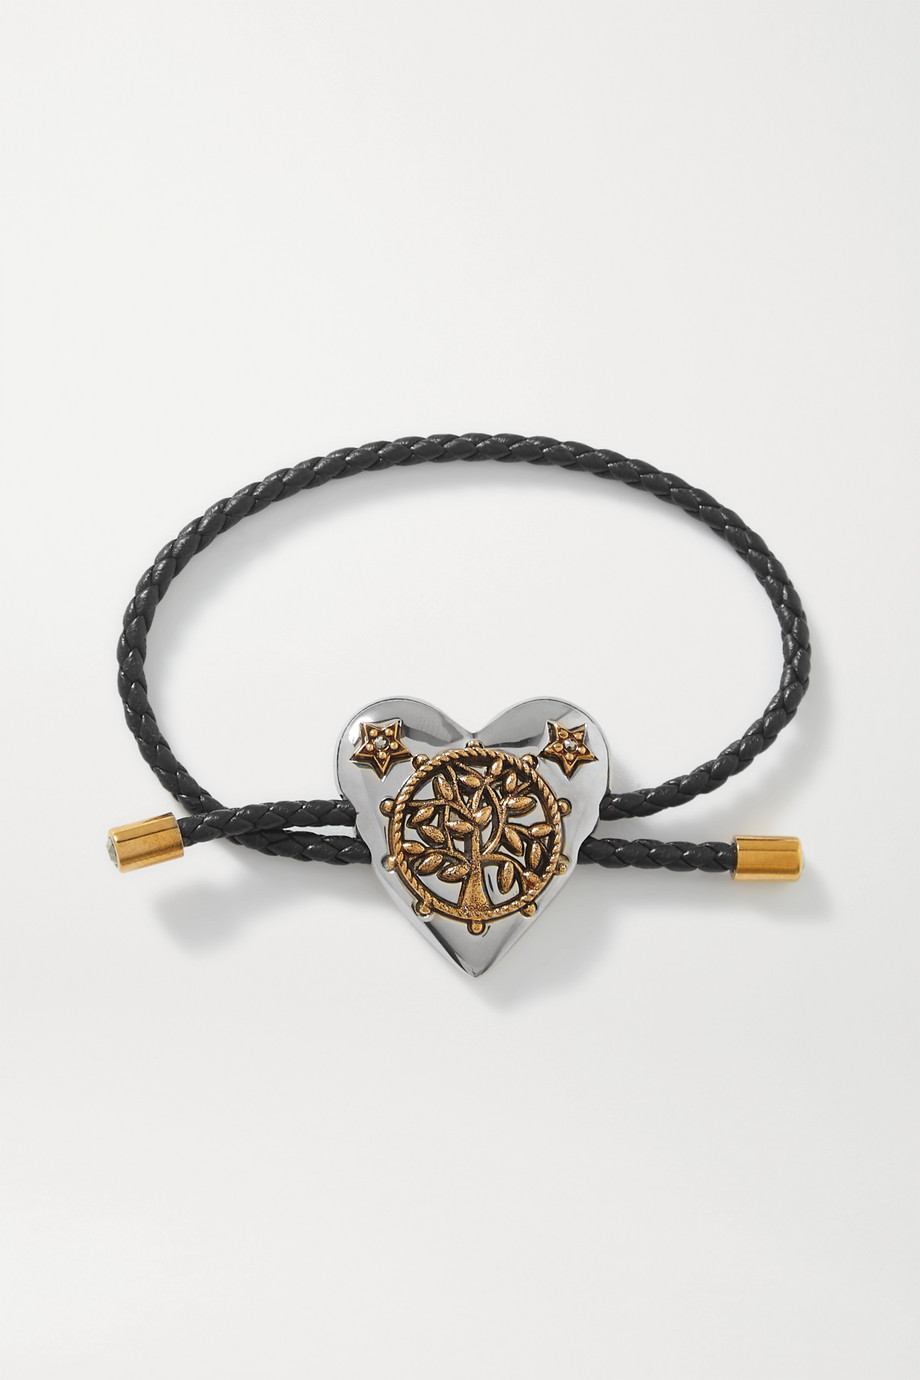 Alexander McQueen Heart woven leather, silver and gold-tone crystal bracelet